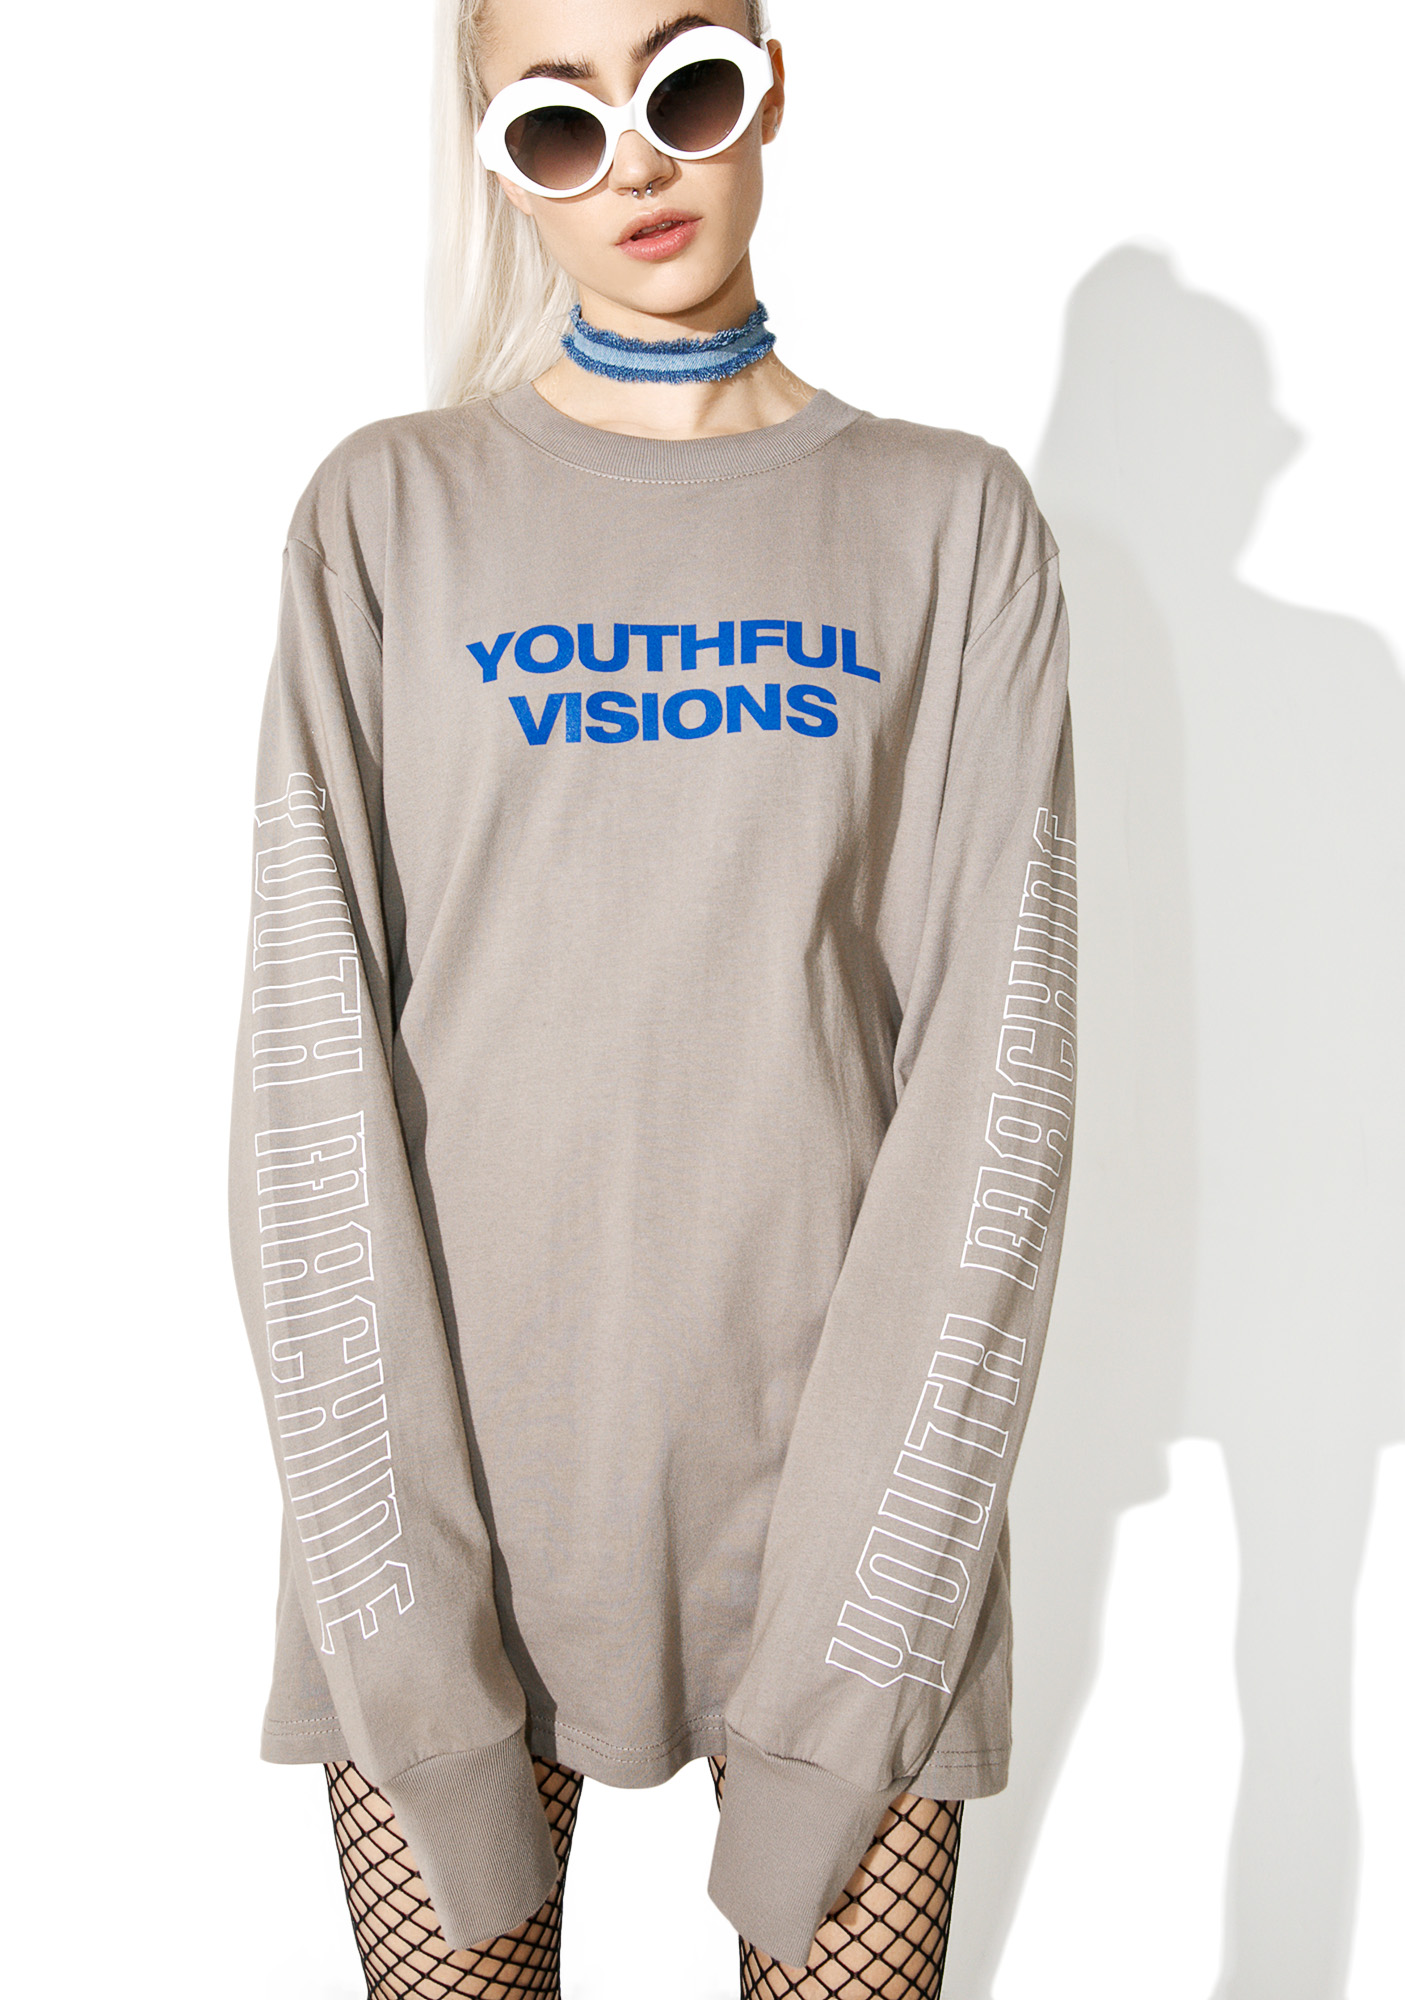 Youthful Visions Long Sleeve